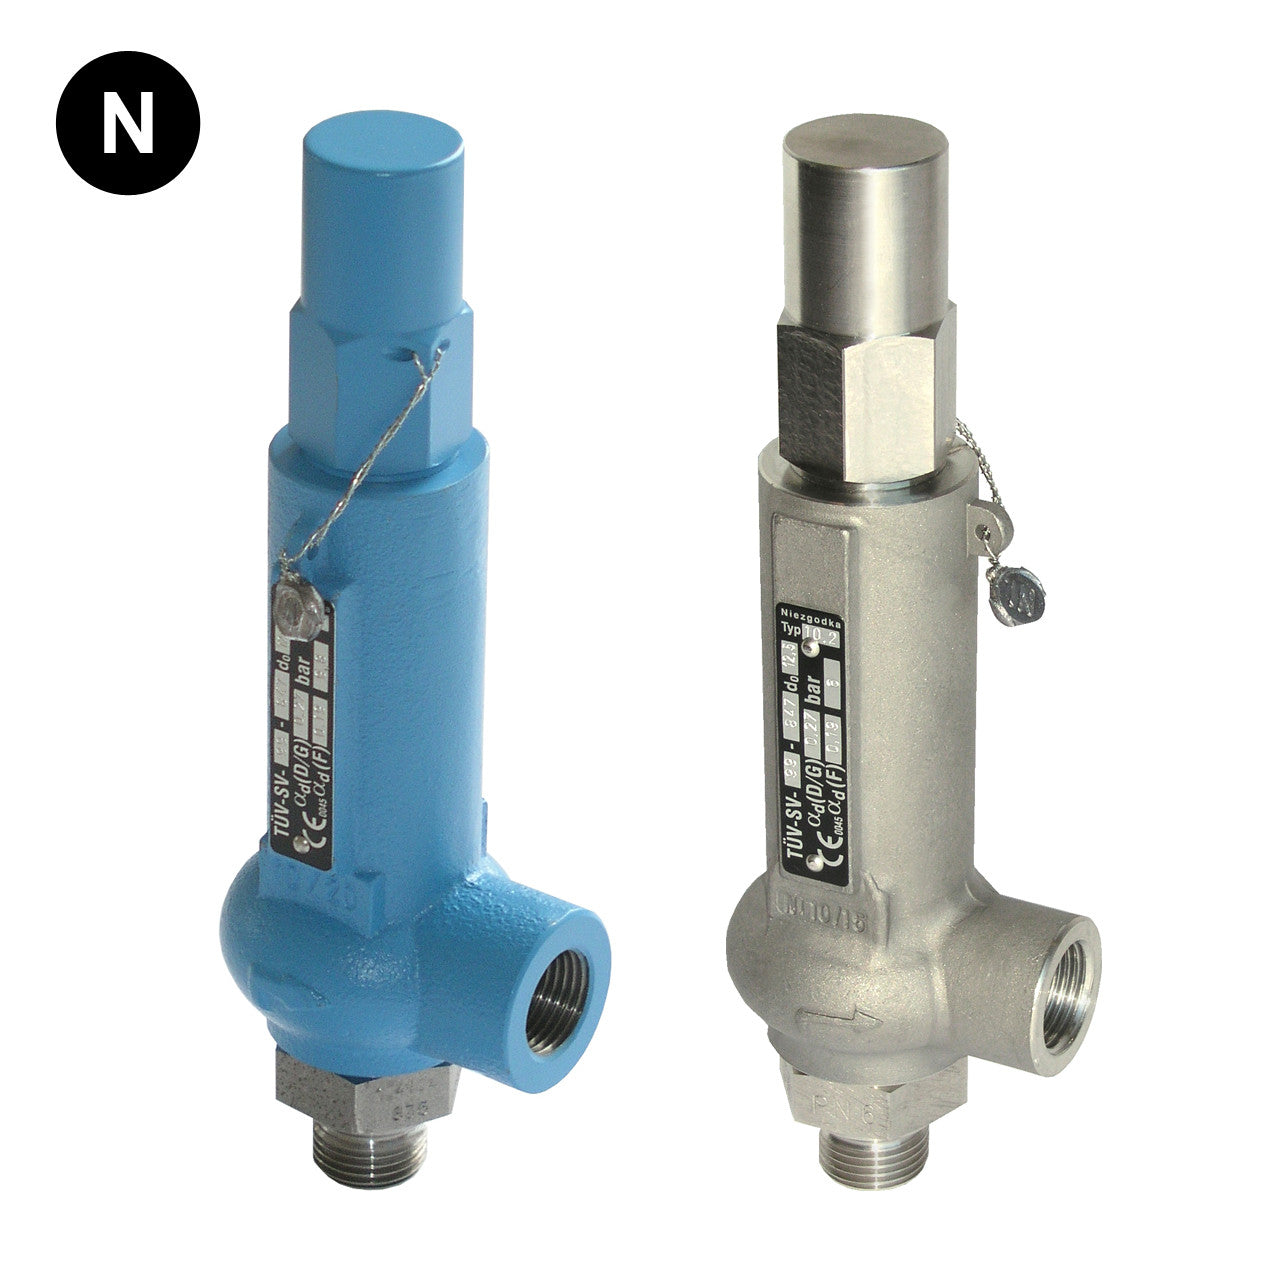 Niezgodka type 10 safety valve flowstar uk limited niezgodka type 10 safety valve flowstar uk limited 1 sciox Image collections